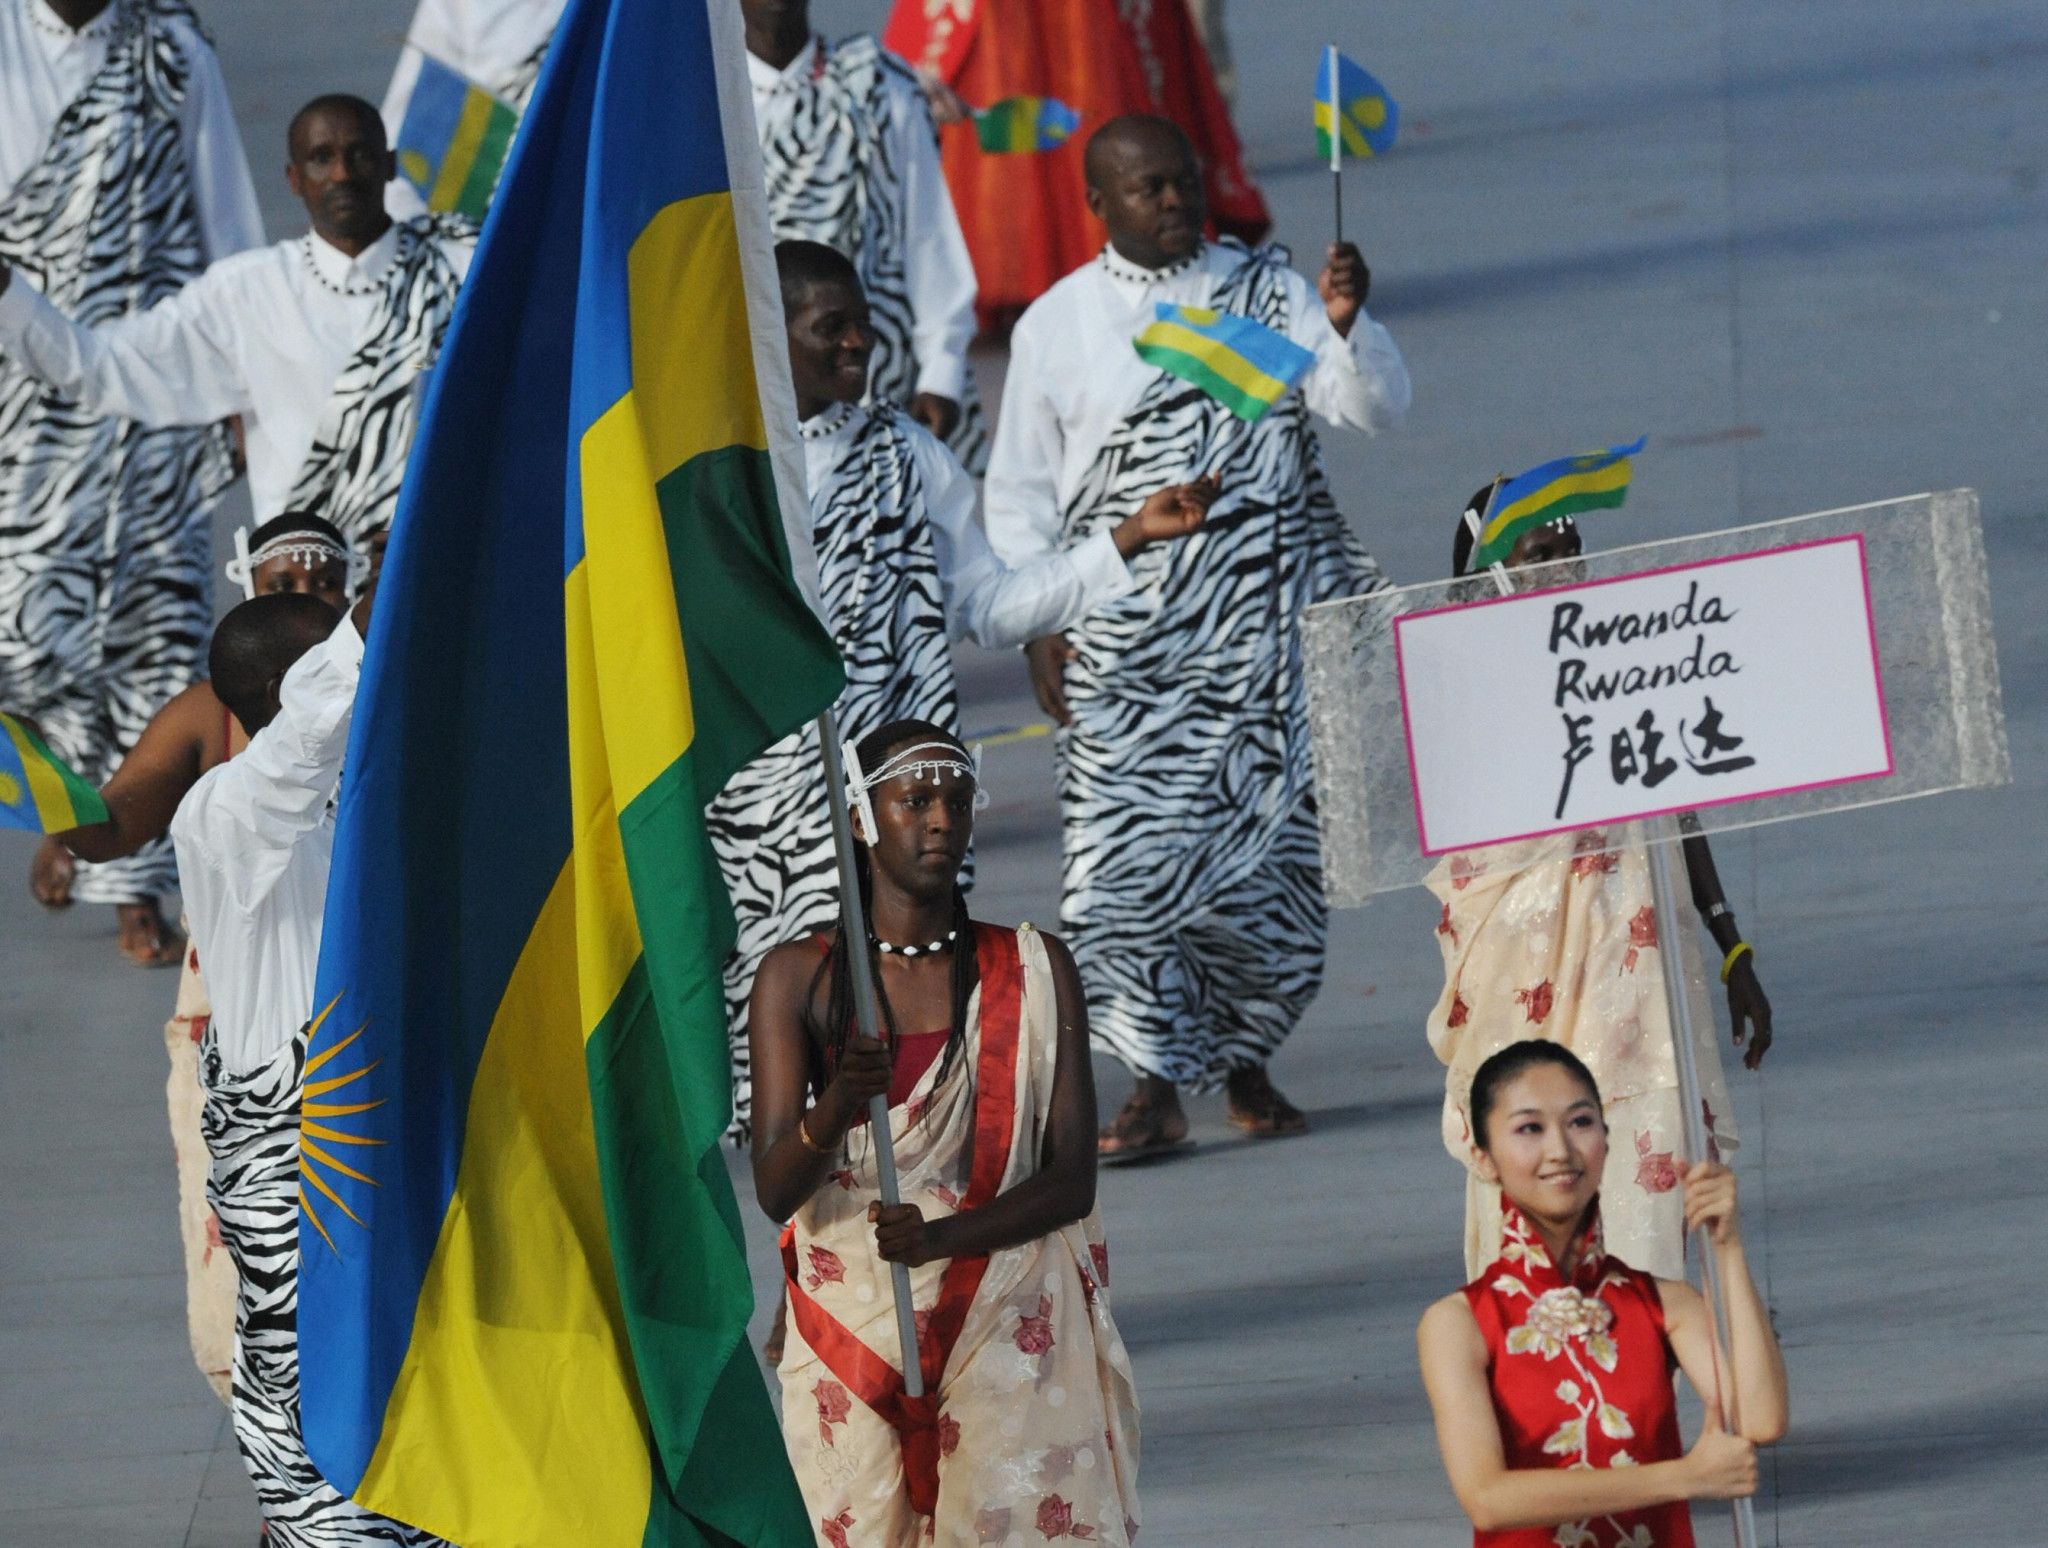 Rwanda athletes at the Beijing 2008 Games - in future all Rwandan athletes competing internationally will require medical insurance ©Getty Images